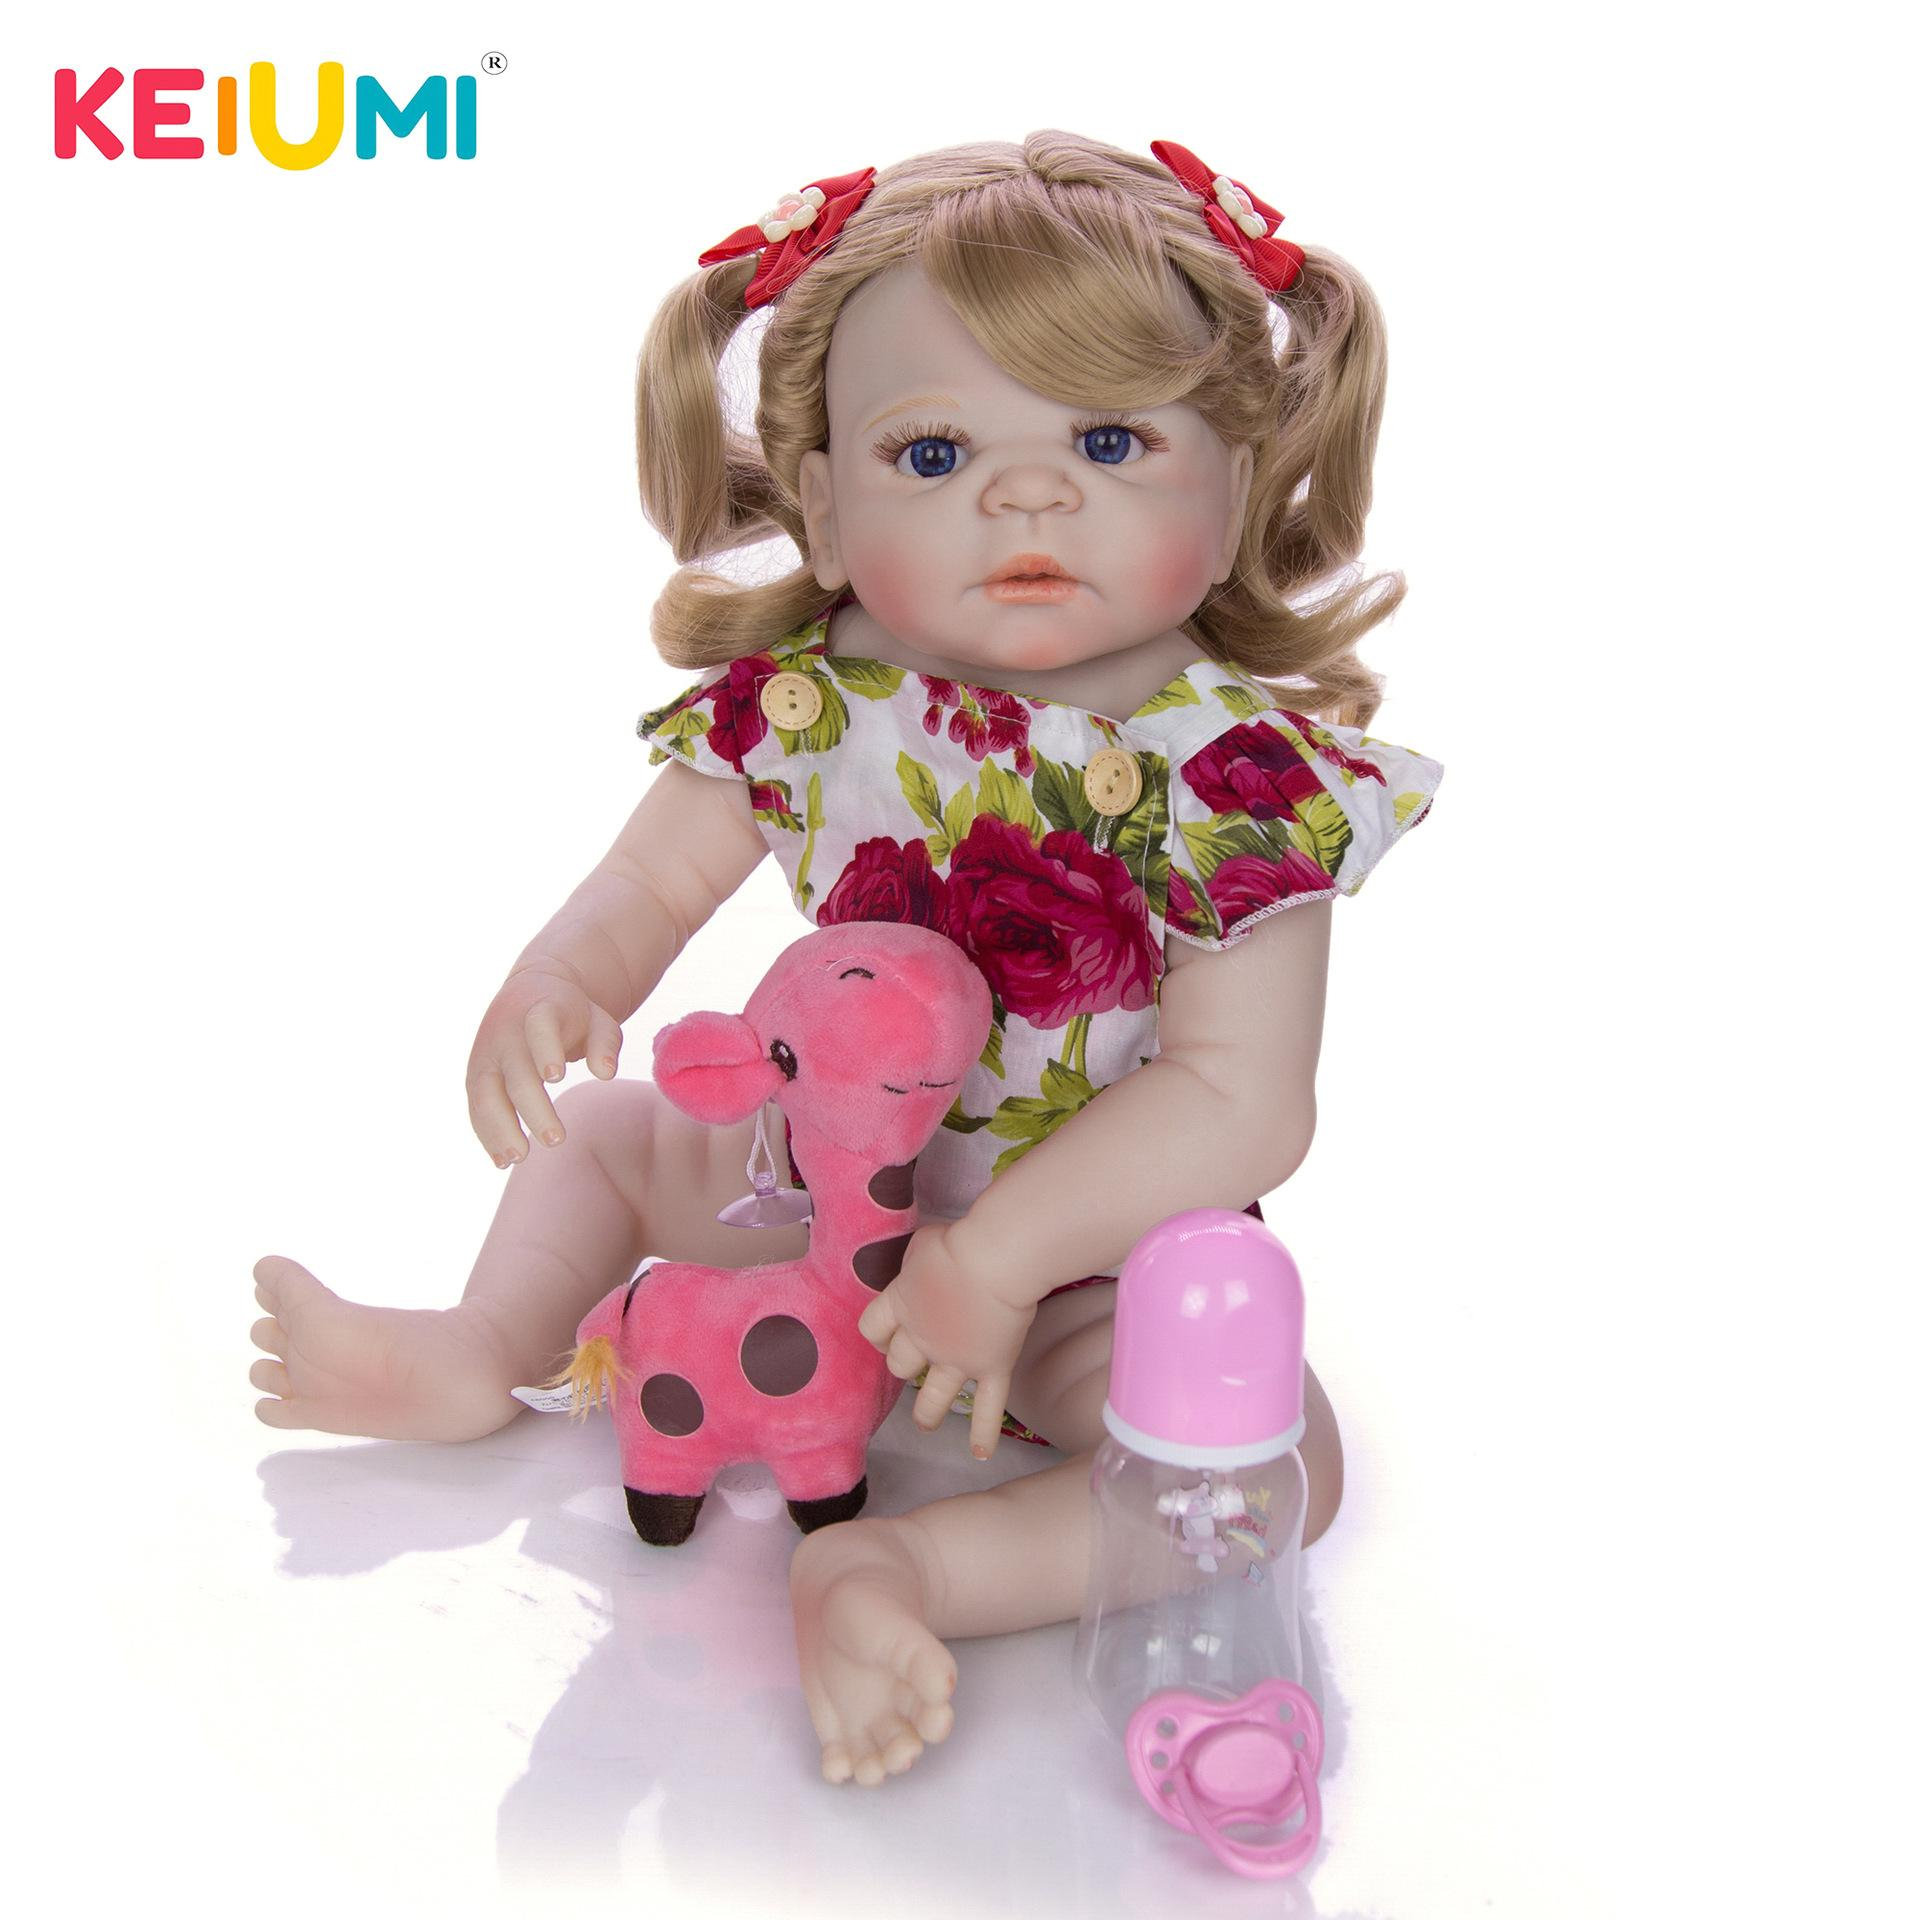 Toddler Reborn Baby Girl Dolls 20/'/' Lifelike Curly Hair Adorable Toys Kids Gifts